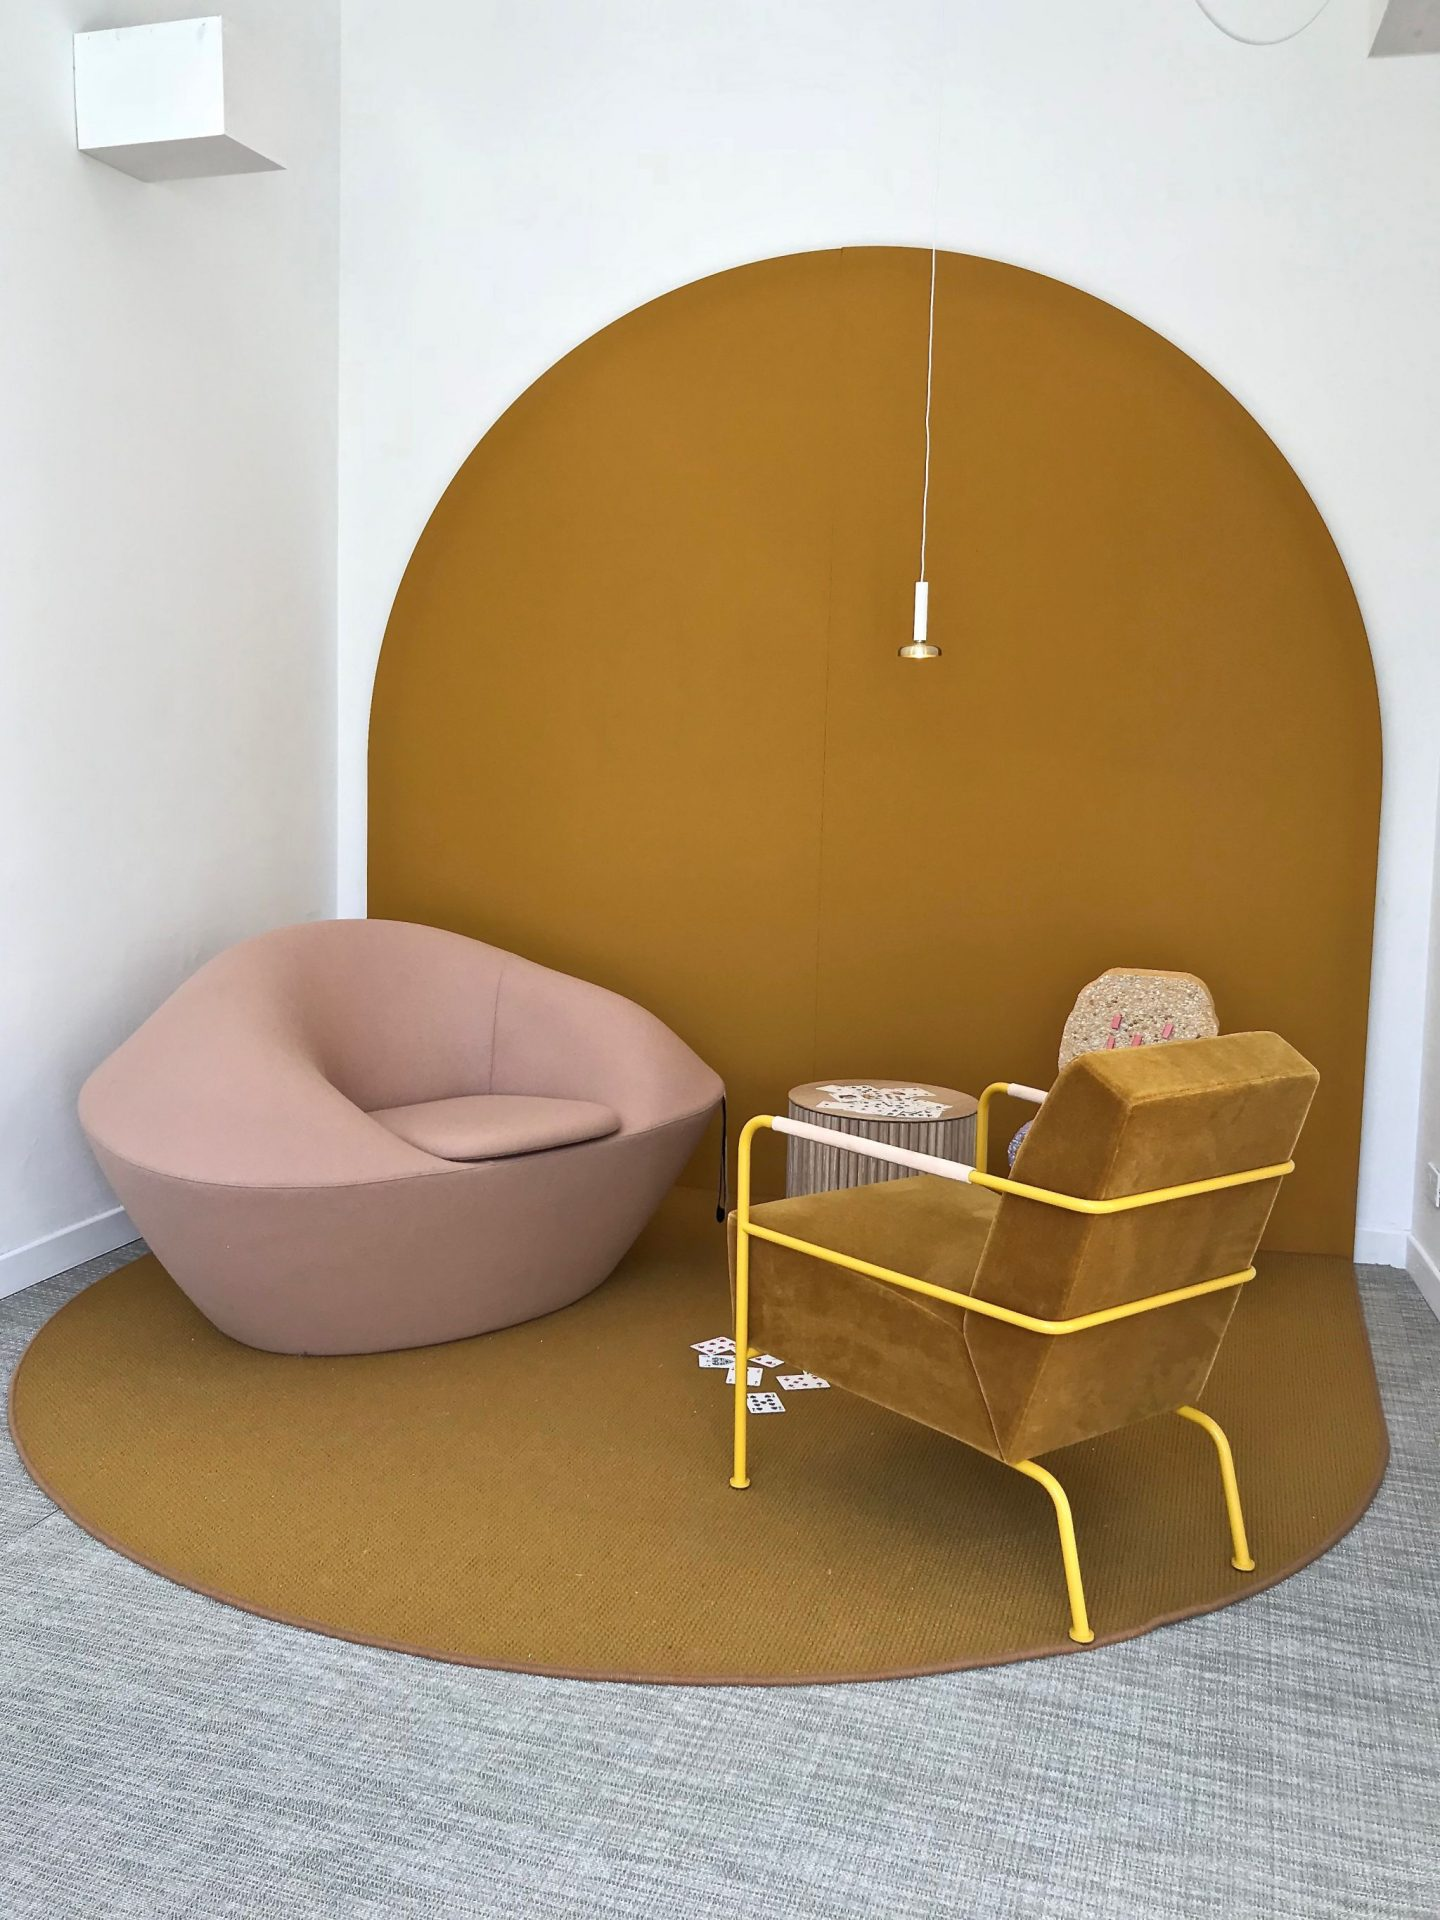 Milan Design Week, Hemma Stories from Home, hellopeagreen, Scandinavian Design, interiors blogger, colour trend